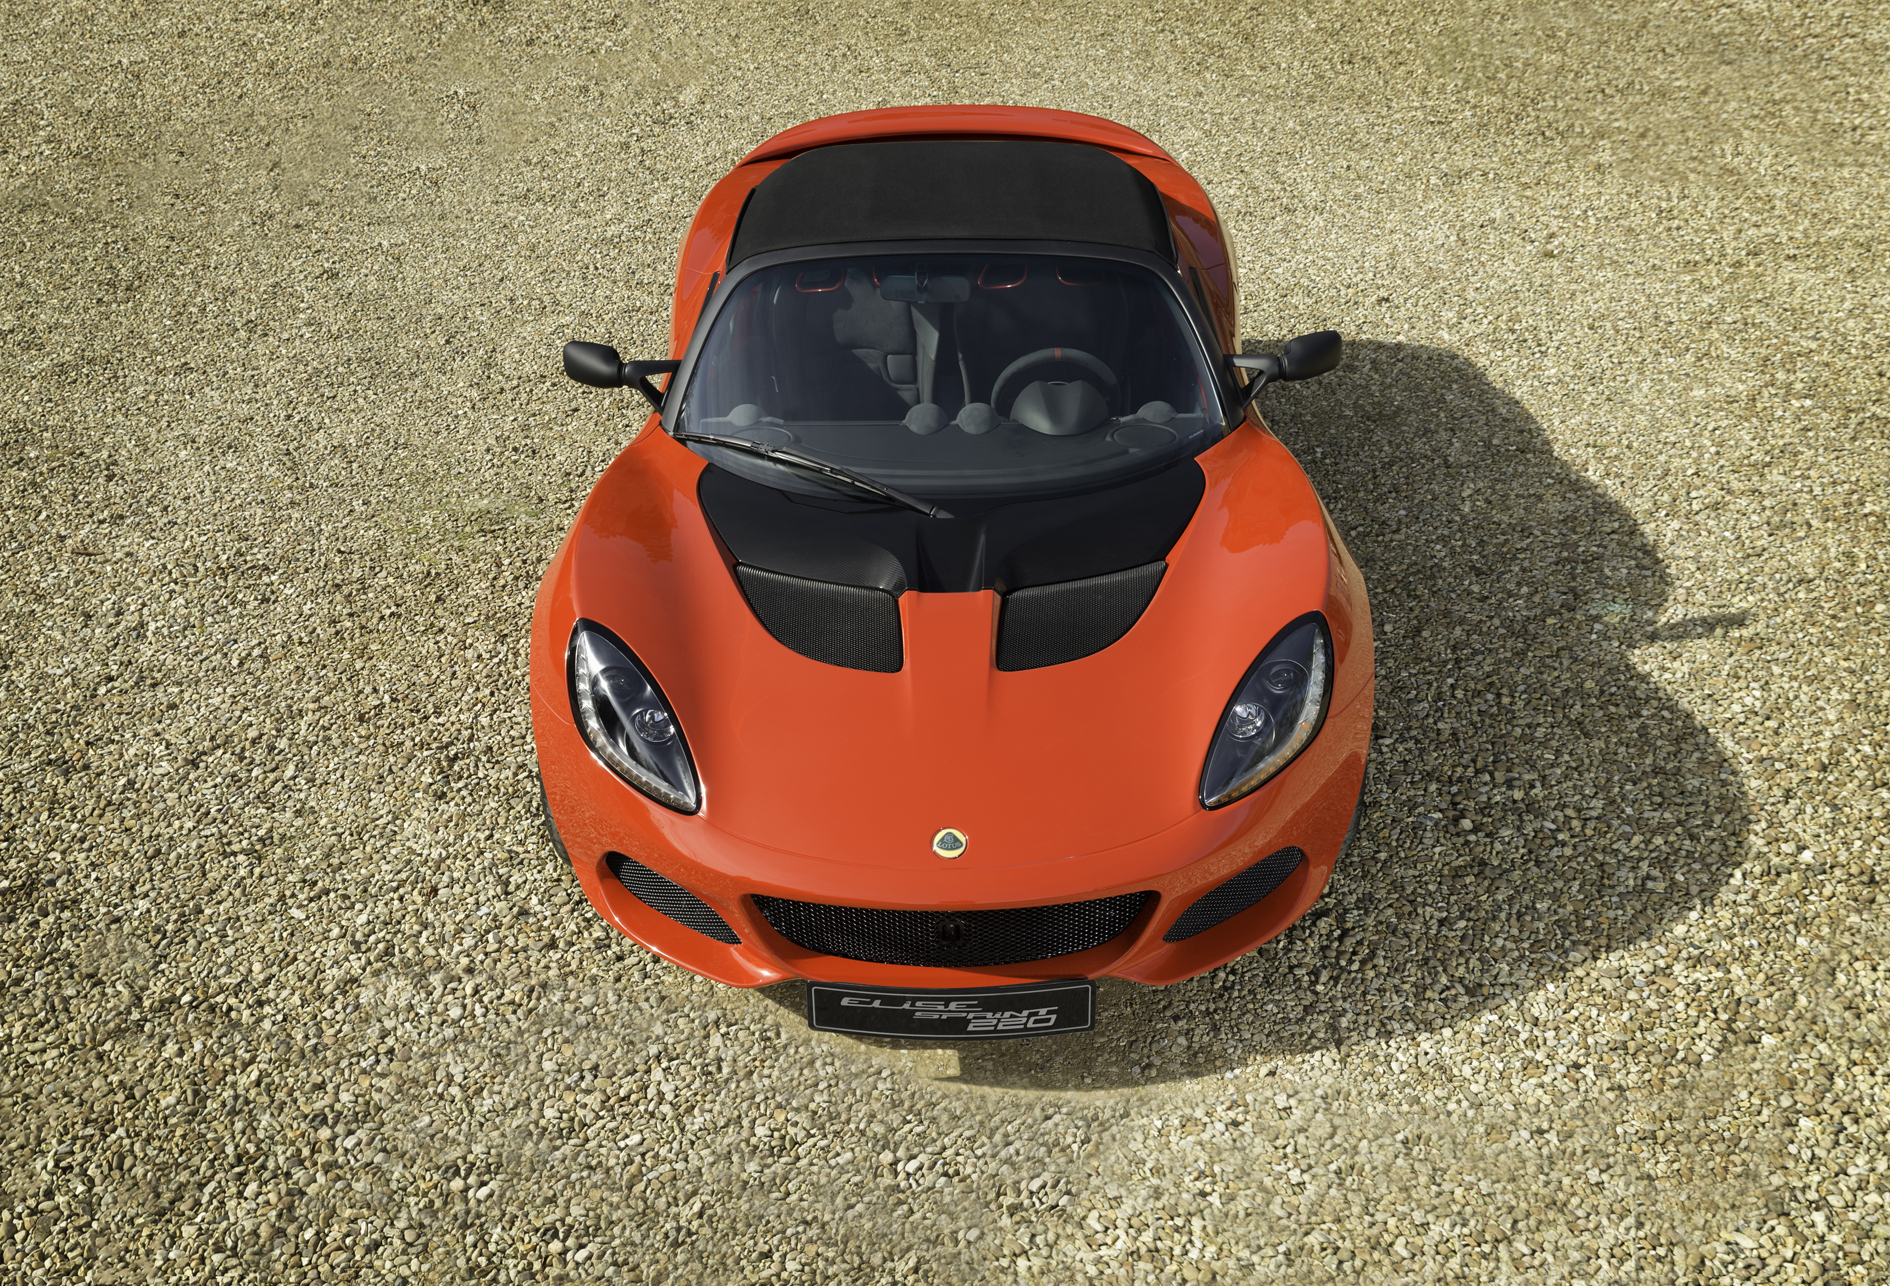 ... Elise Sprint and Elise Sprint 220 respectively), harder cornering and a  power to weight ratio of up to 168 hp / tonne (Elise Sprint) and 257 hp /  tonne ...